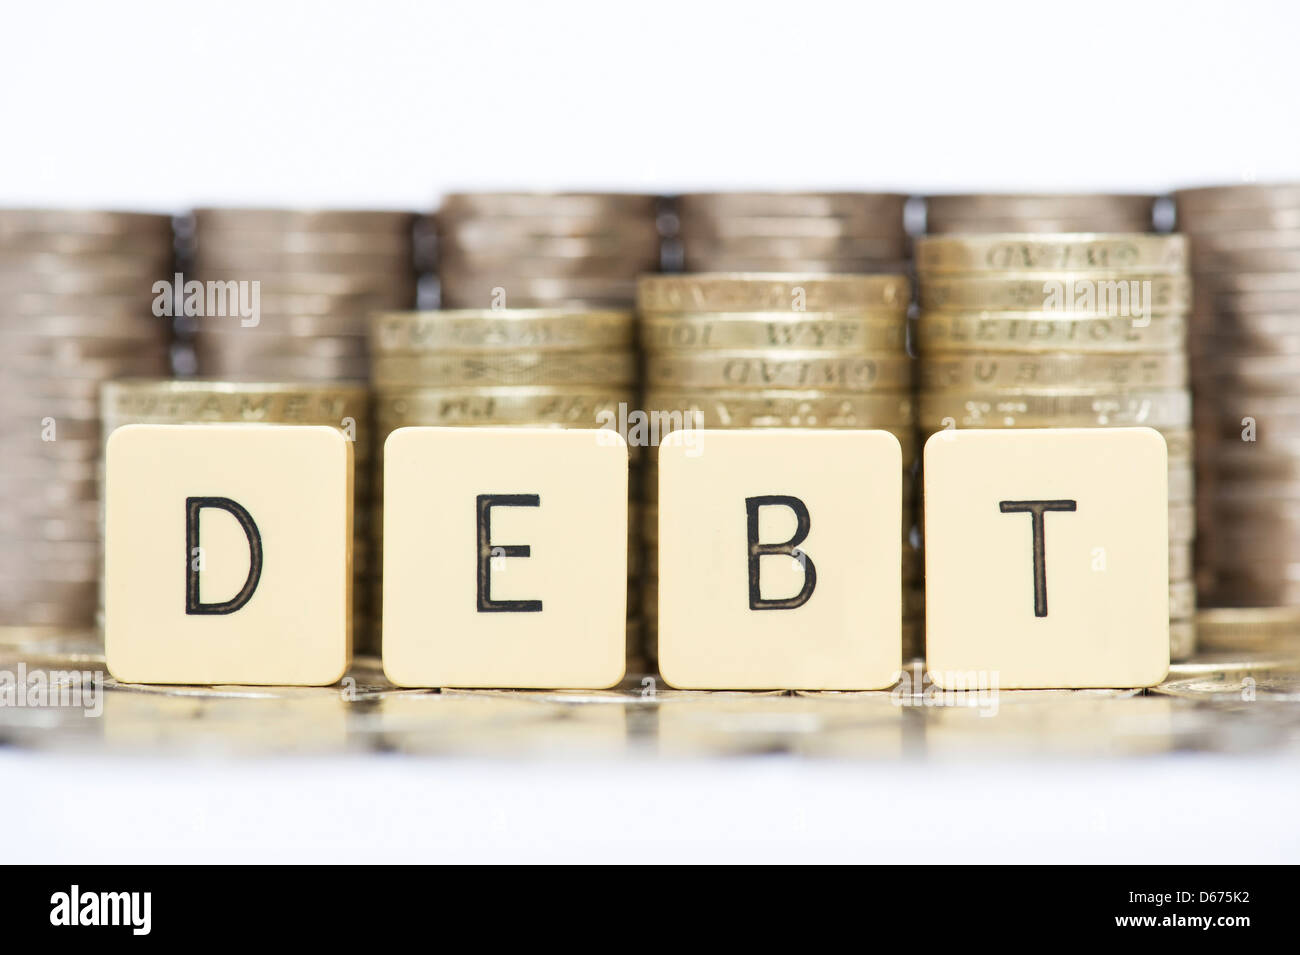 The word DEBT in front of stacks of English twenty pence and one pound coins - Stock Image